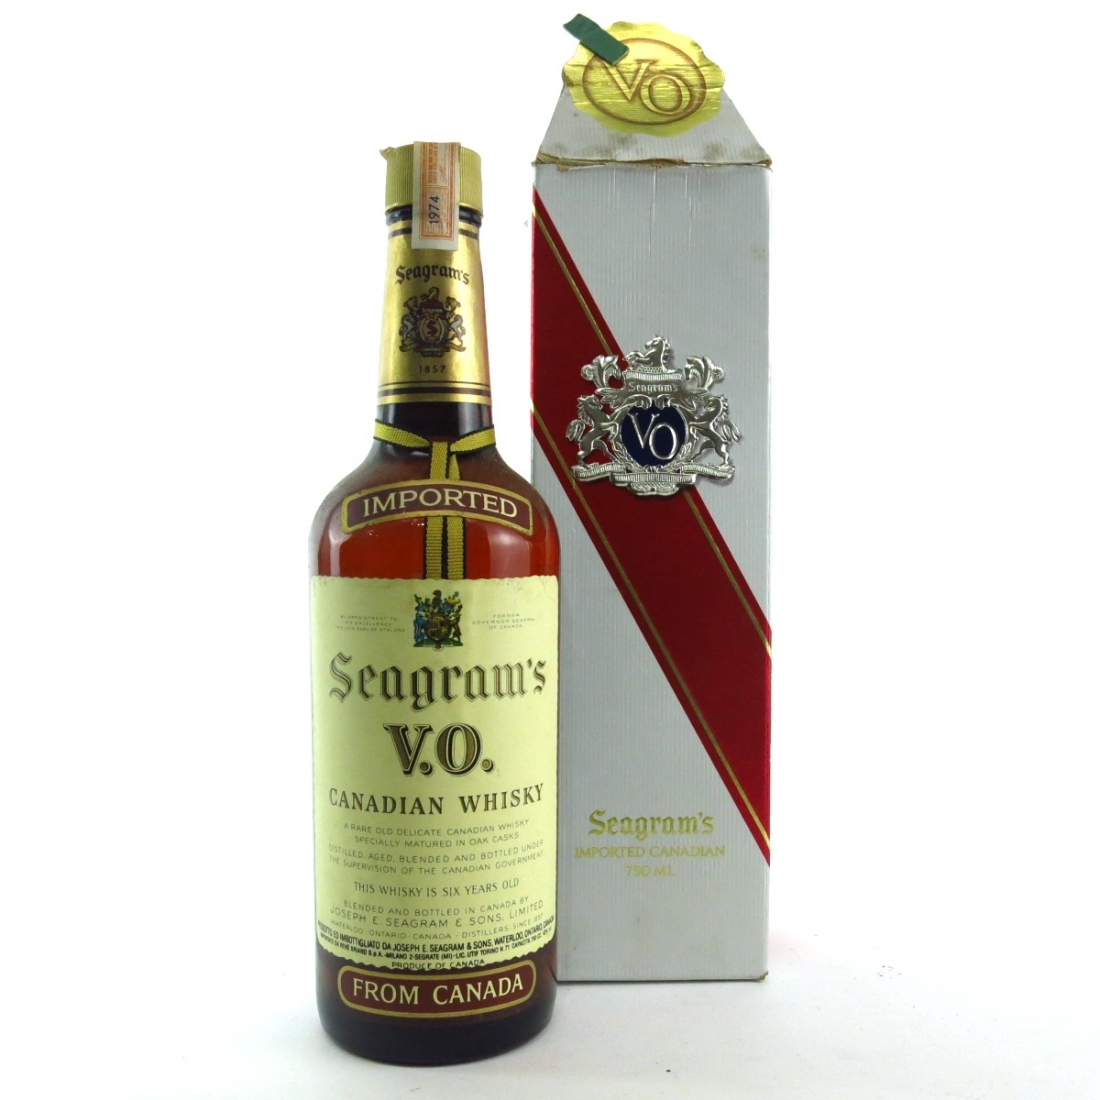 Seagram's 1974 VO 6 Year Old Canadian Whisky